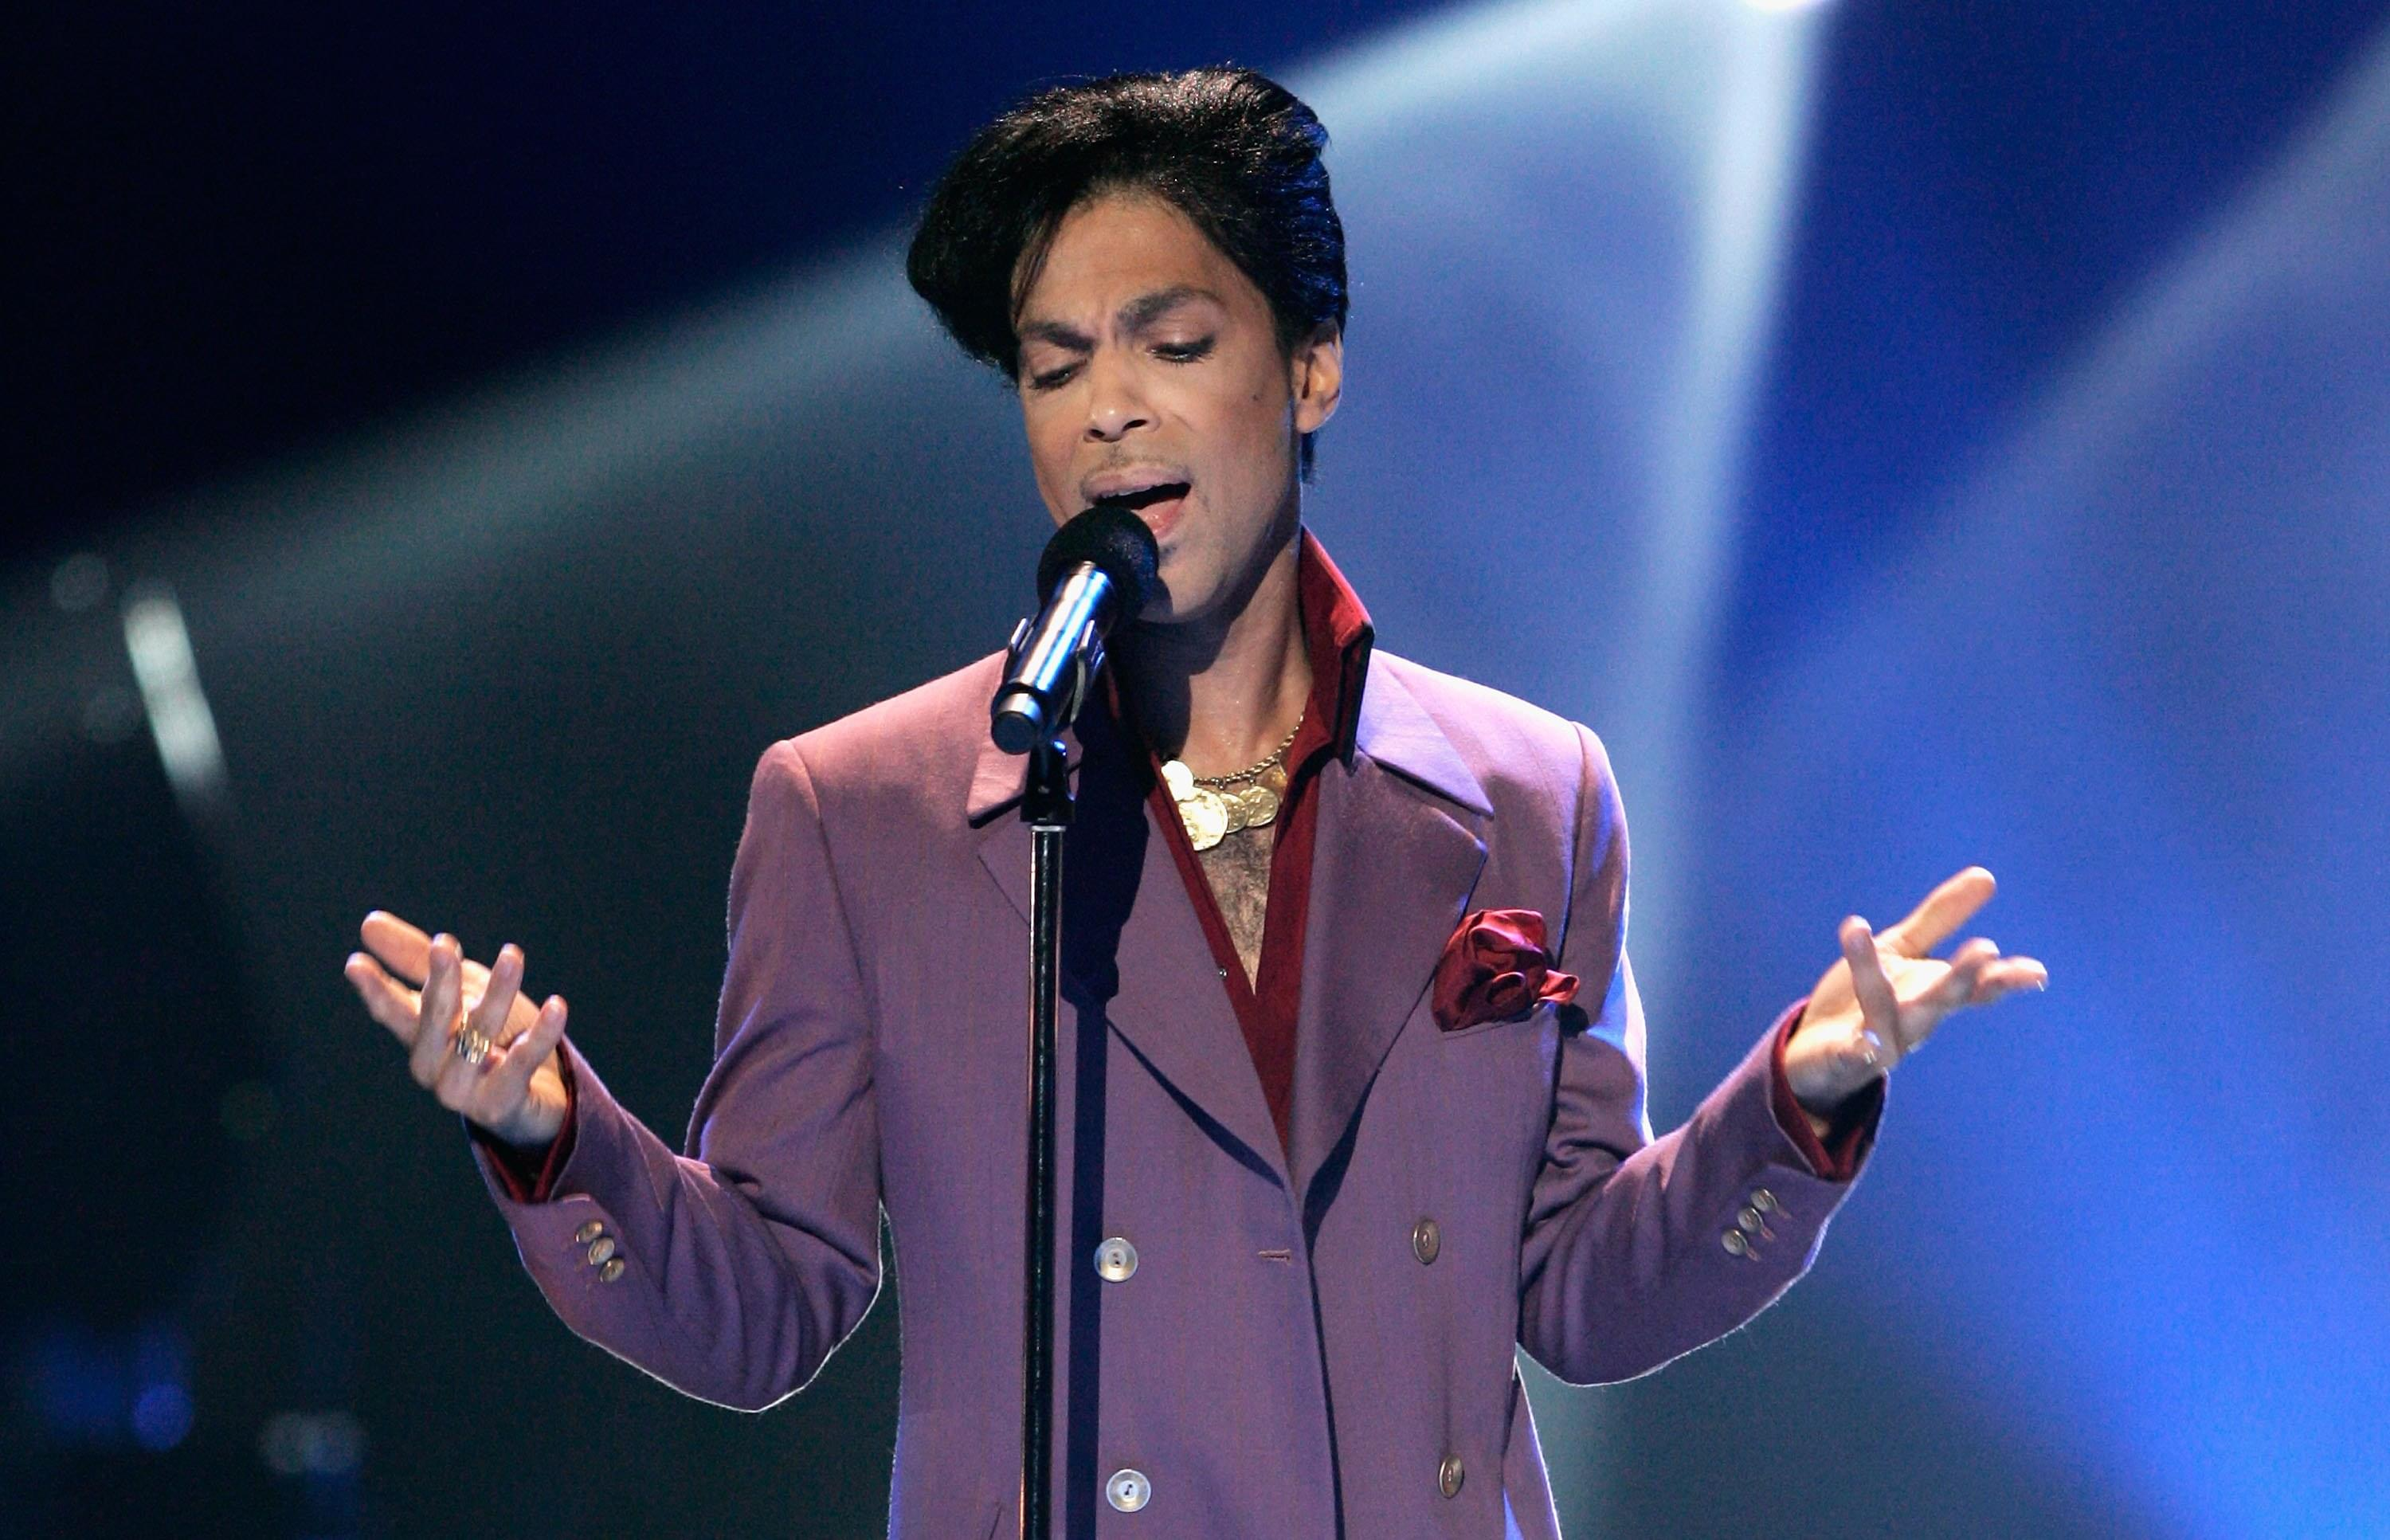 Prince Fans Shocked That His Music Will Be Used In Credit Card Commercial